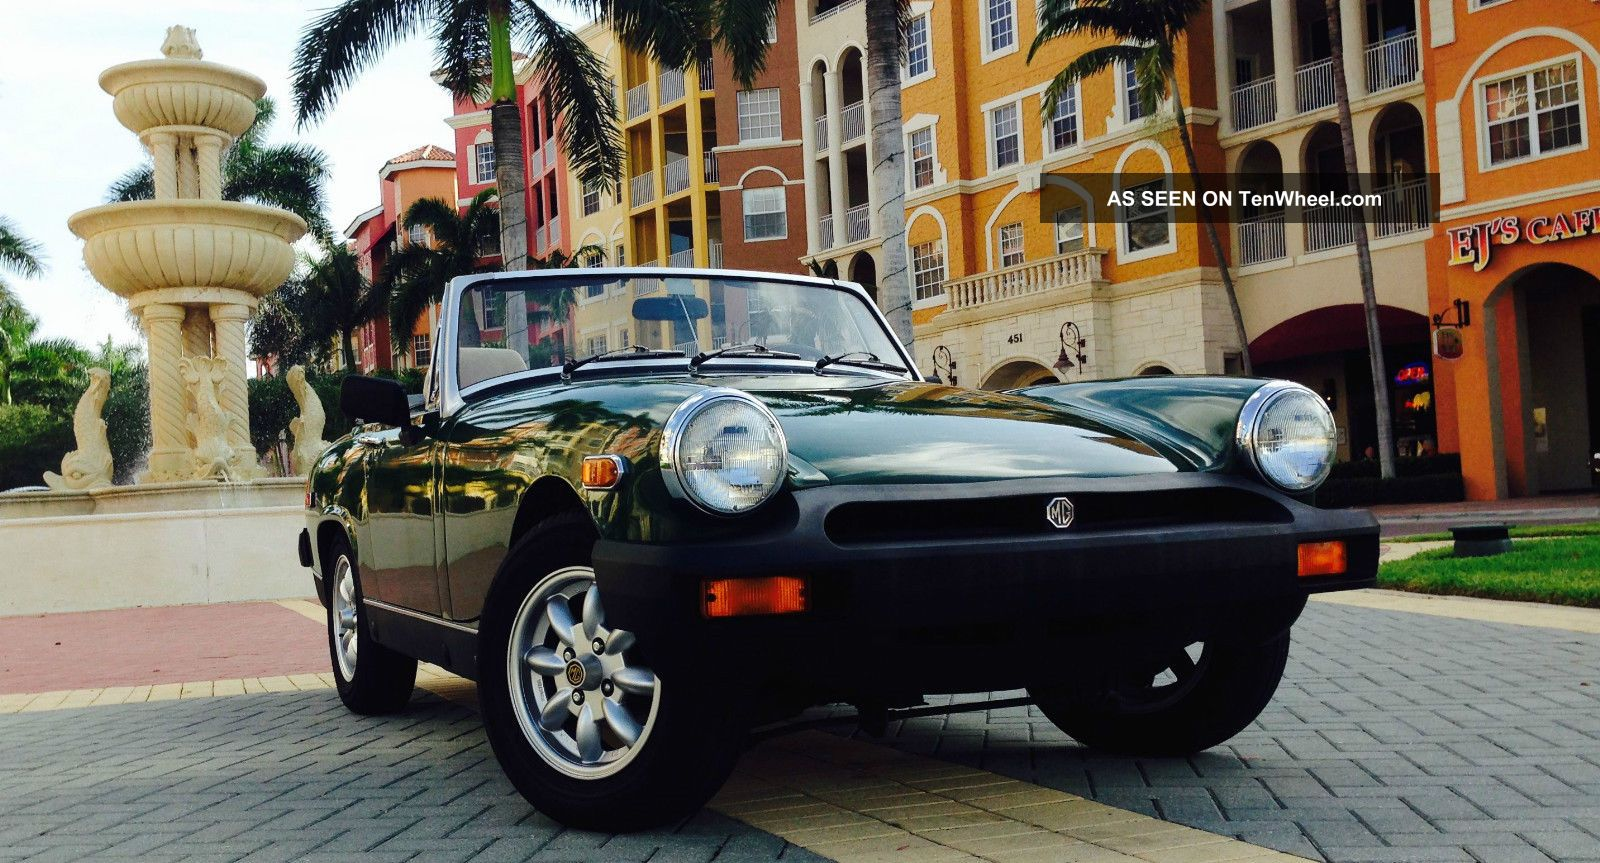 1979 Mg Midget 1500 Convertible Classic Excellent Running Condition Midget photo